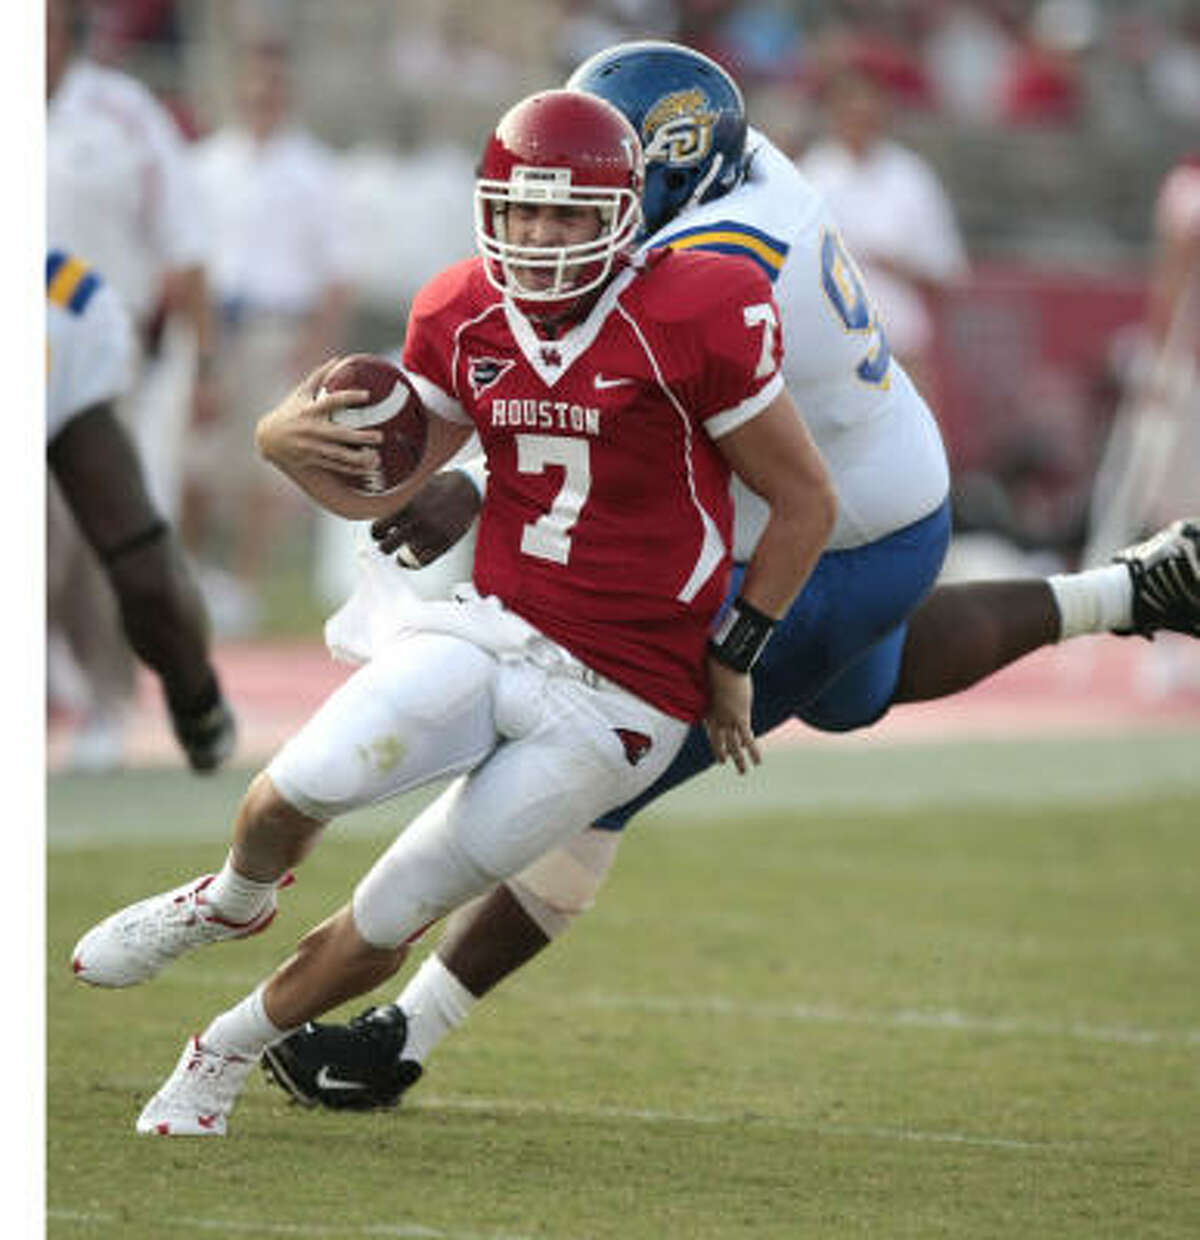 UH quarterback Case Keenum set career highs in yards and touchdowns in three quarters of work Saturday.